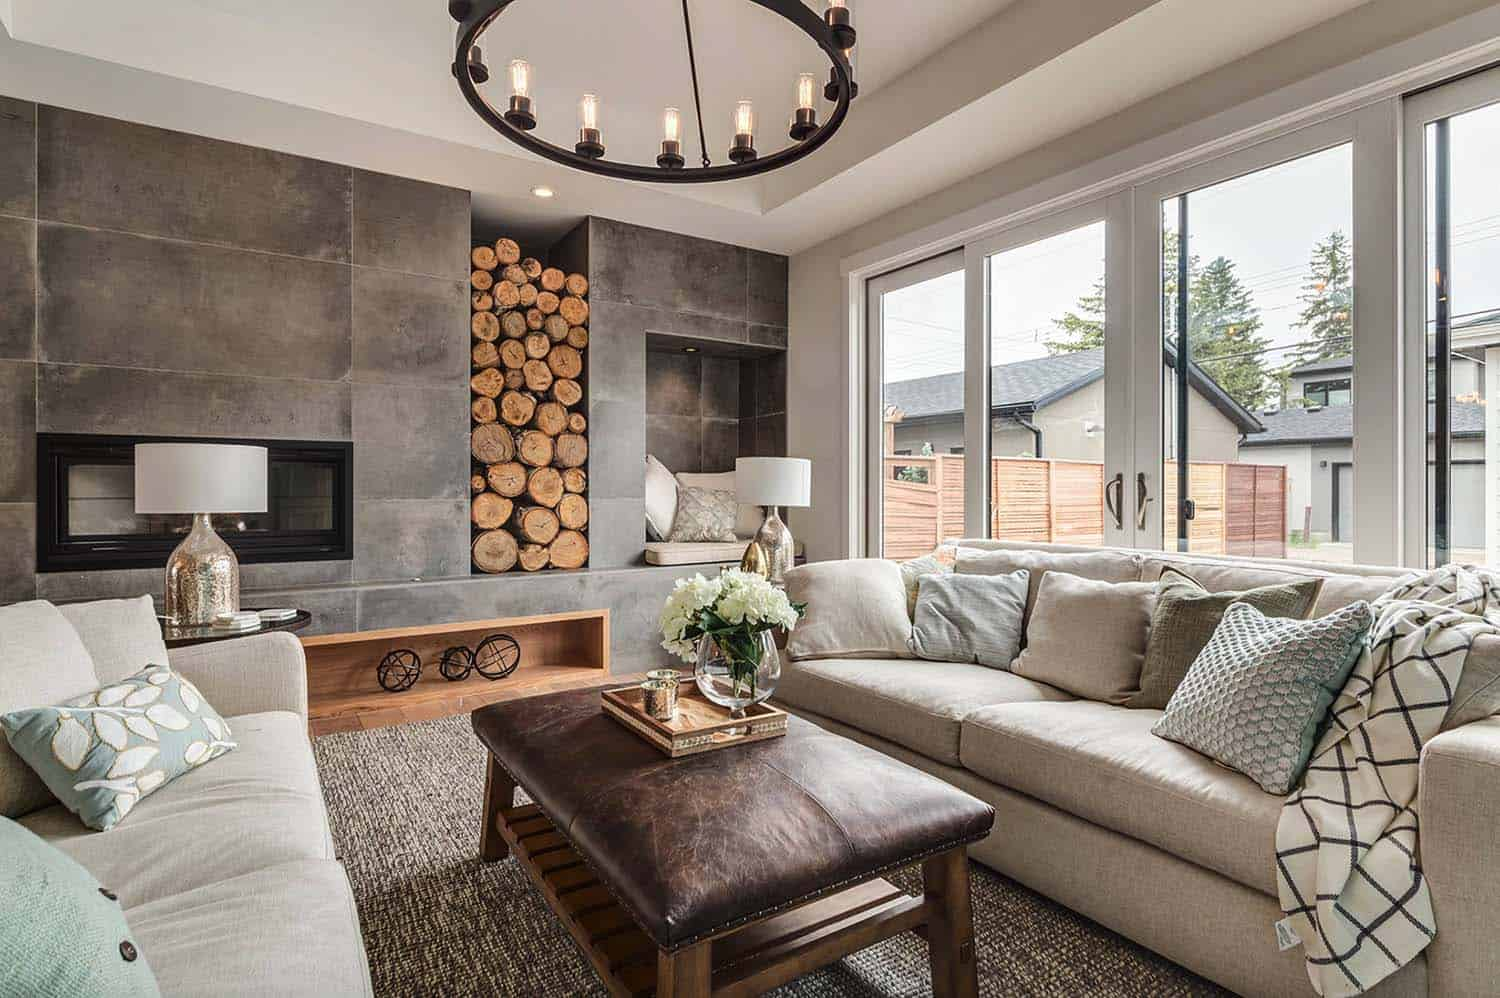 Calgary home radiates with fresh, modern farmhouse style